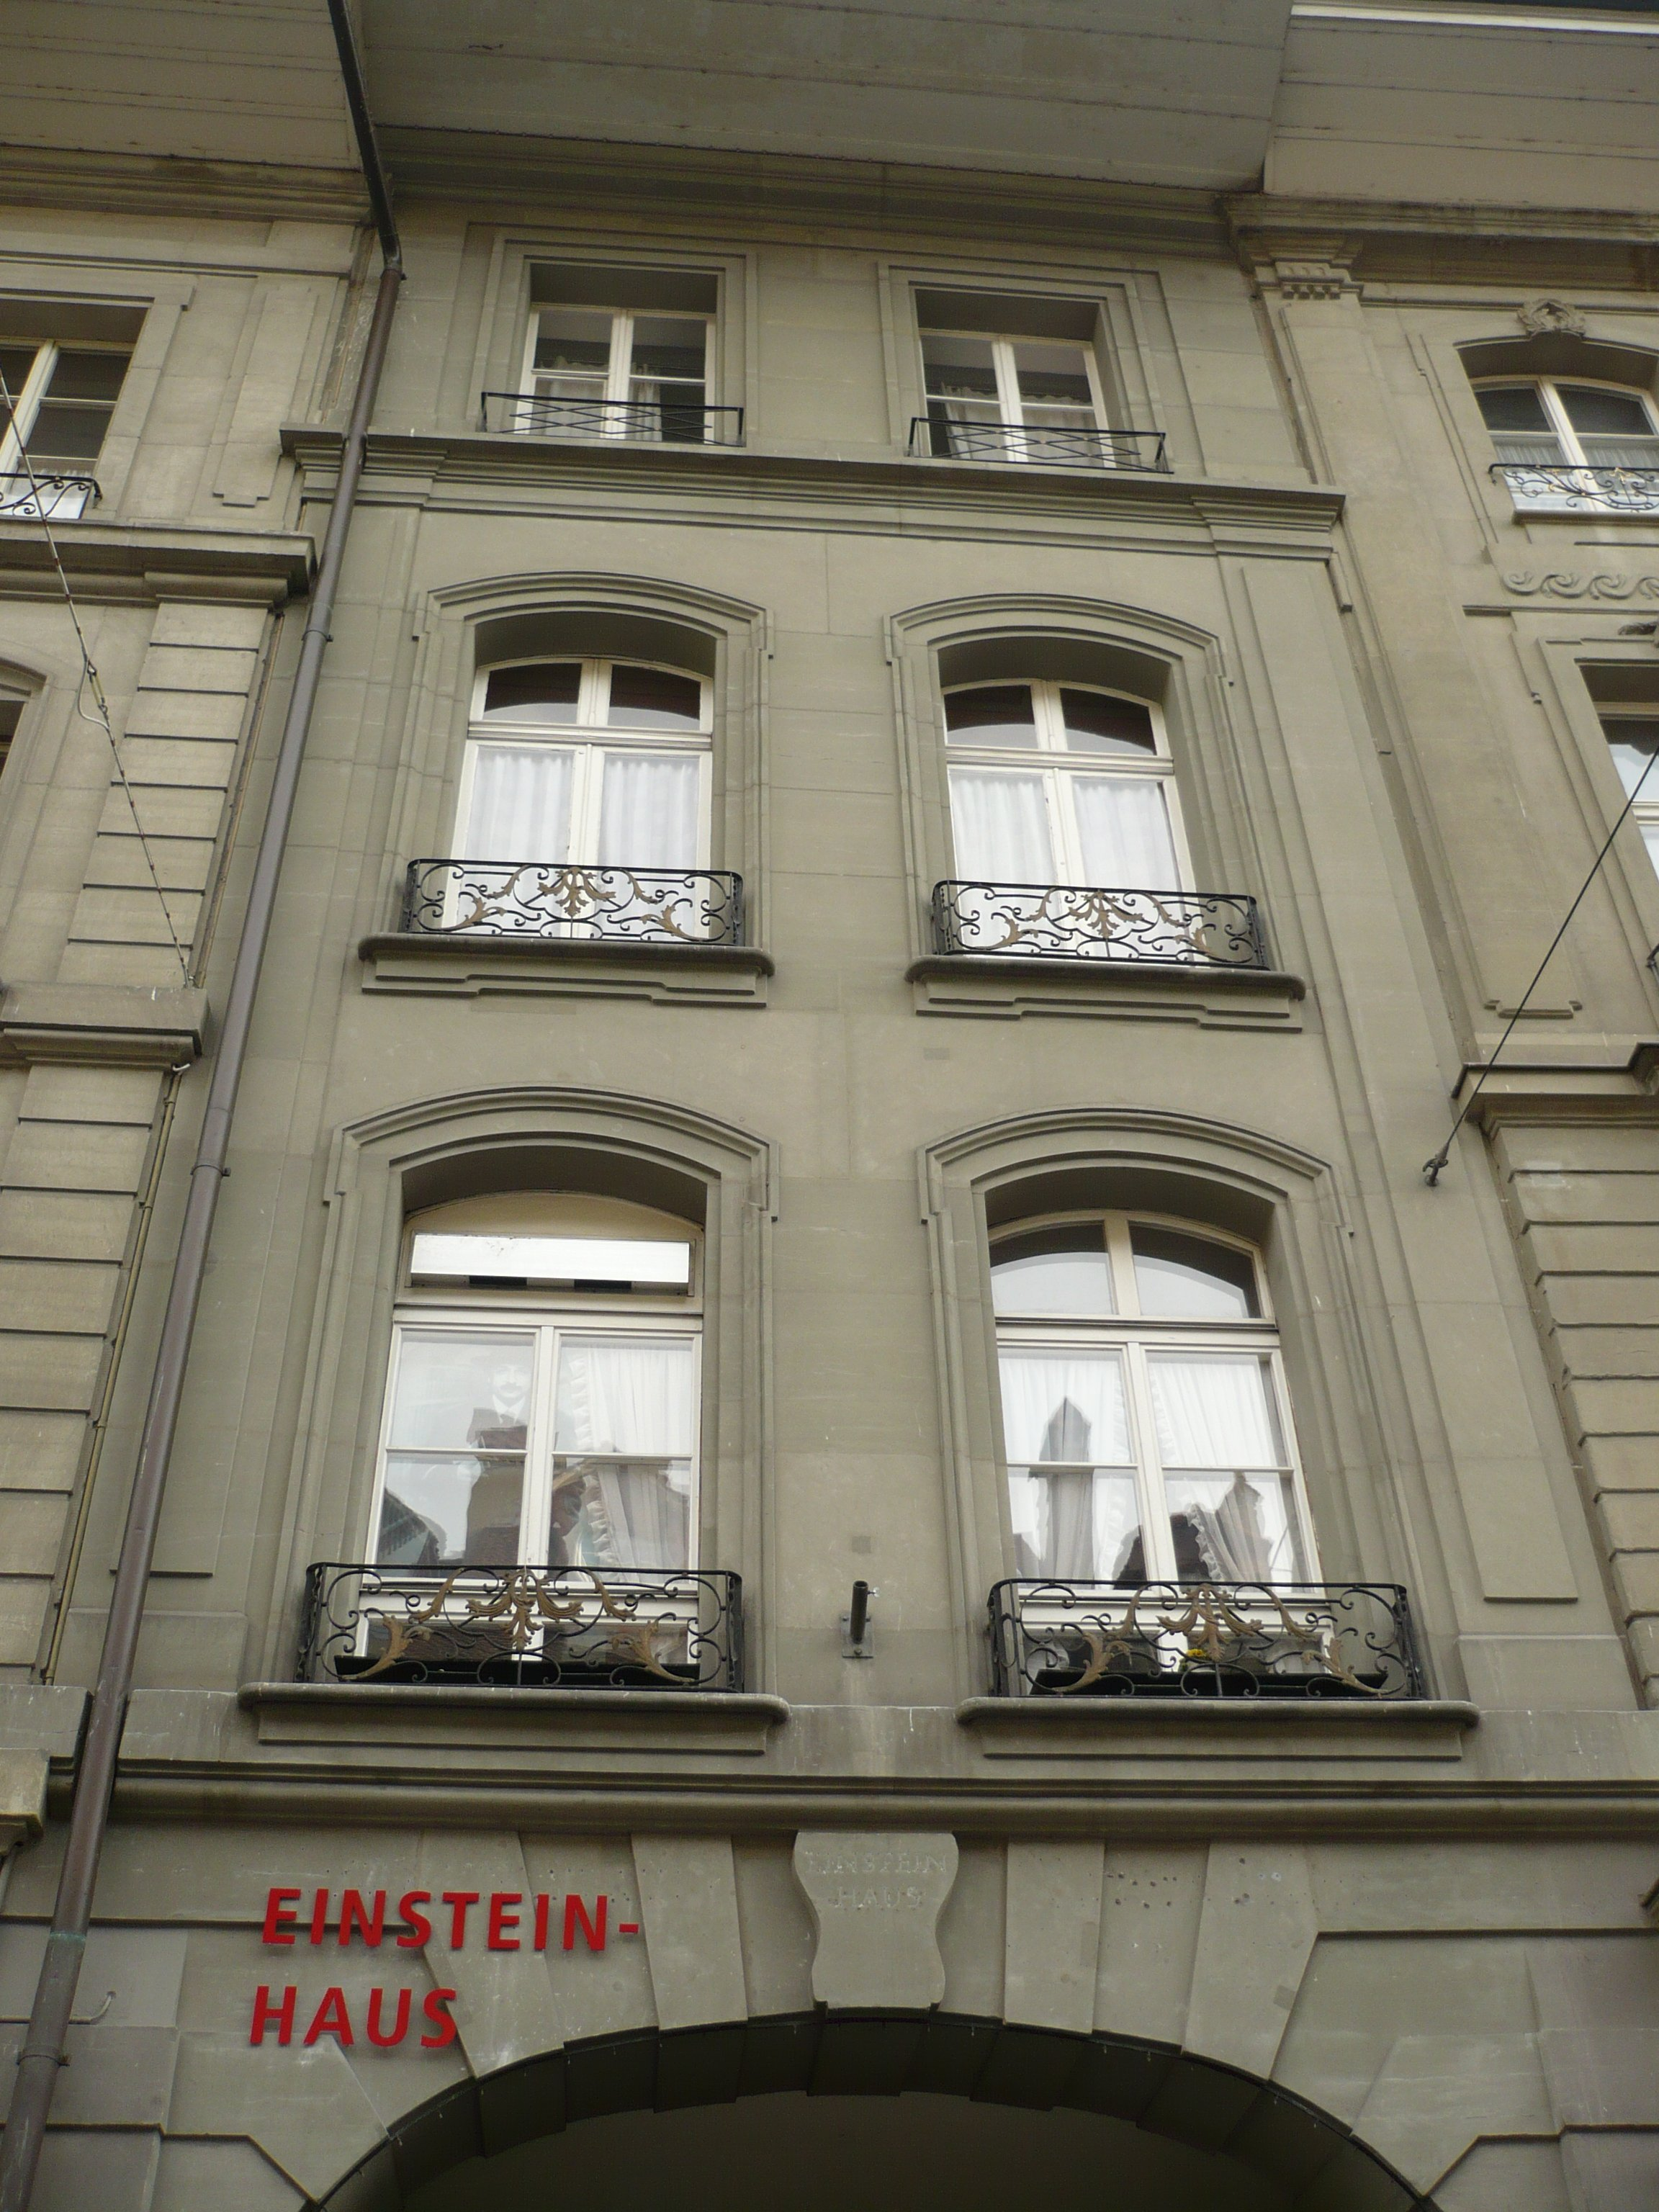 Bern - Einstein House